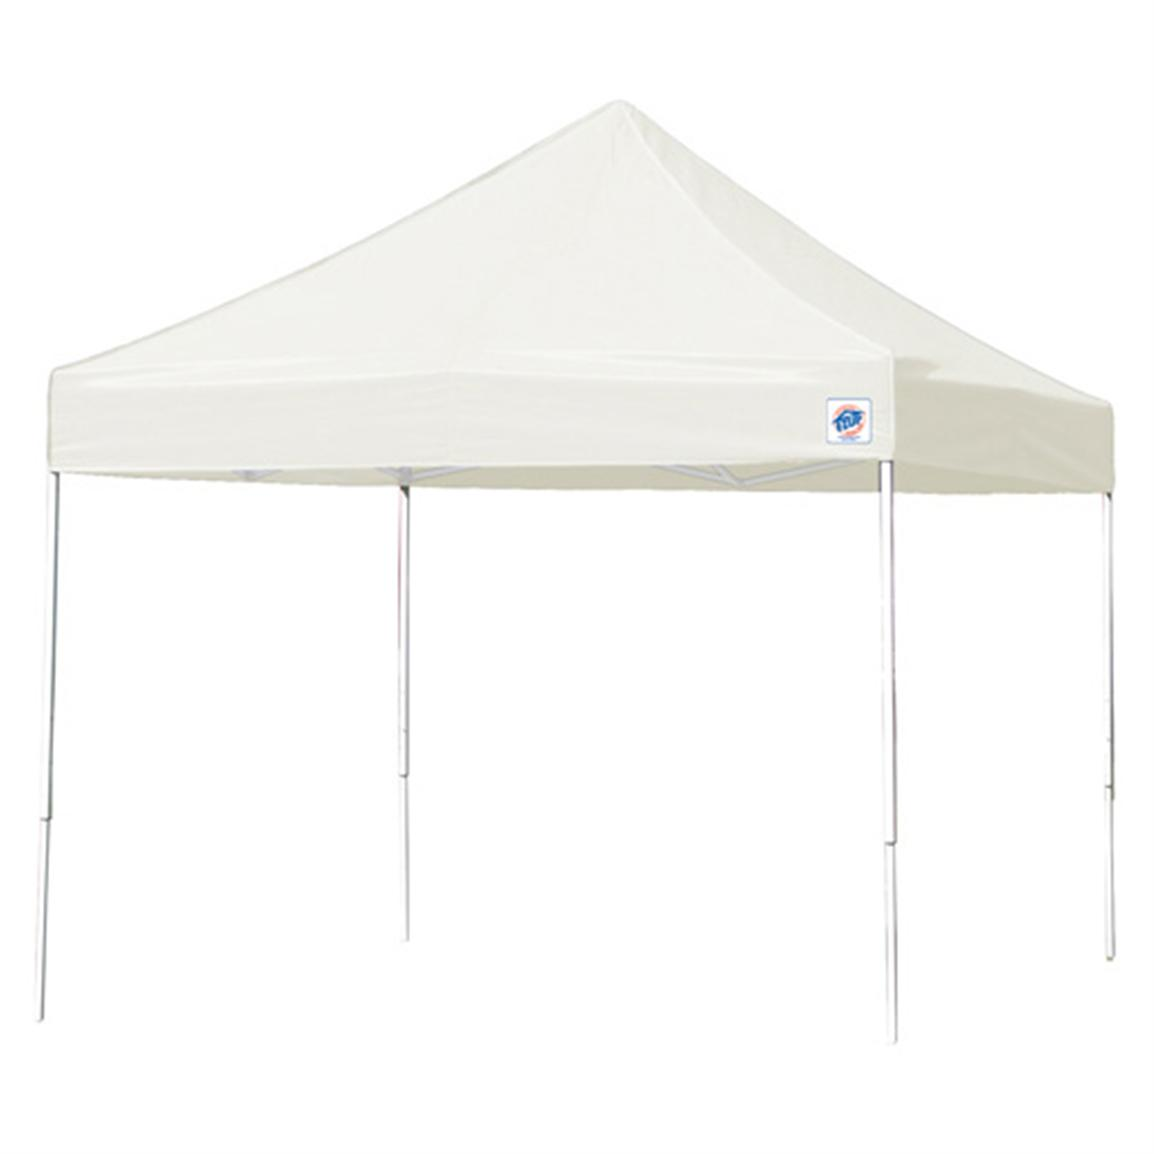 EZ-Up® Express II™ 10x10' Instant Shelter